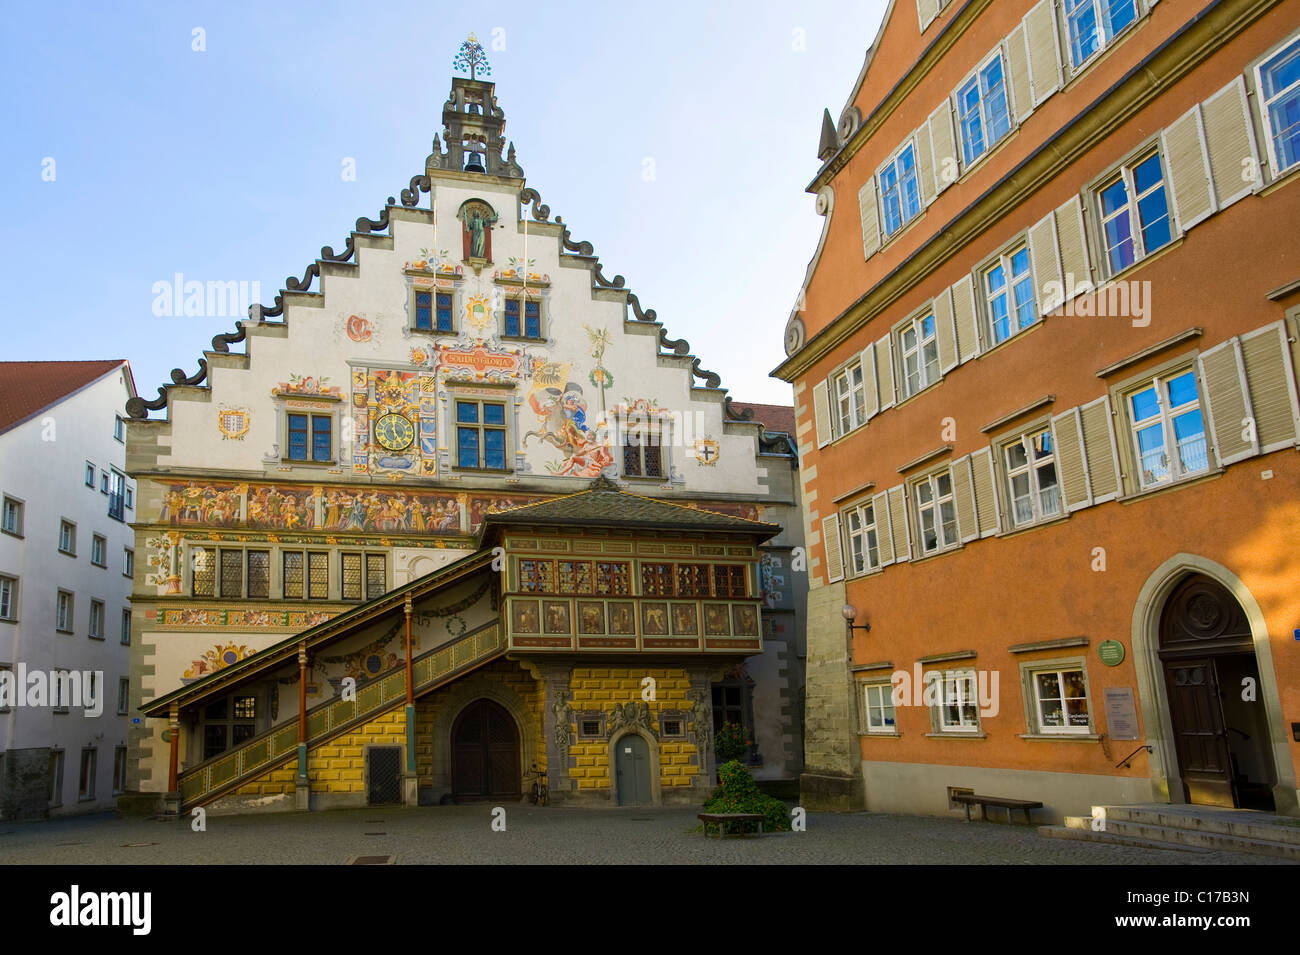 Altes Zollamt, Old Customs Office, Lindau am Bodensee, Lake Constance, Bavaria, Germany, Europe Stock Photo